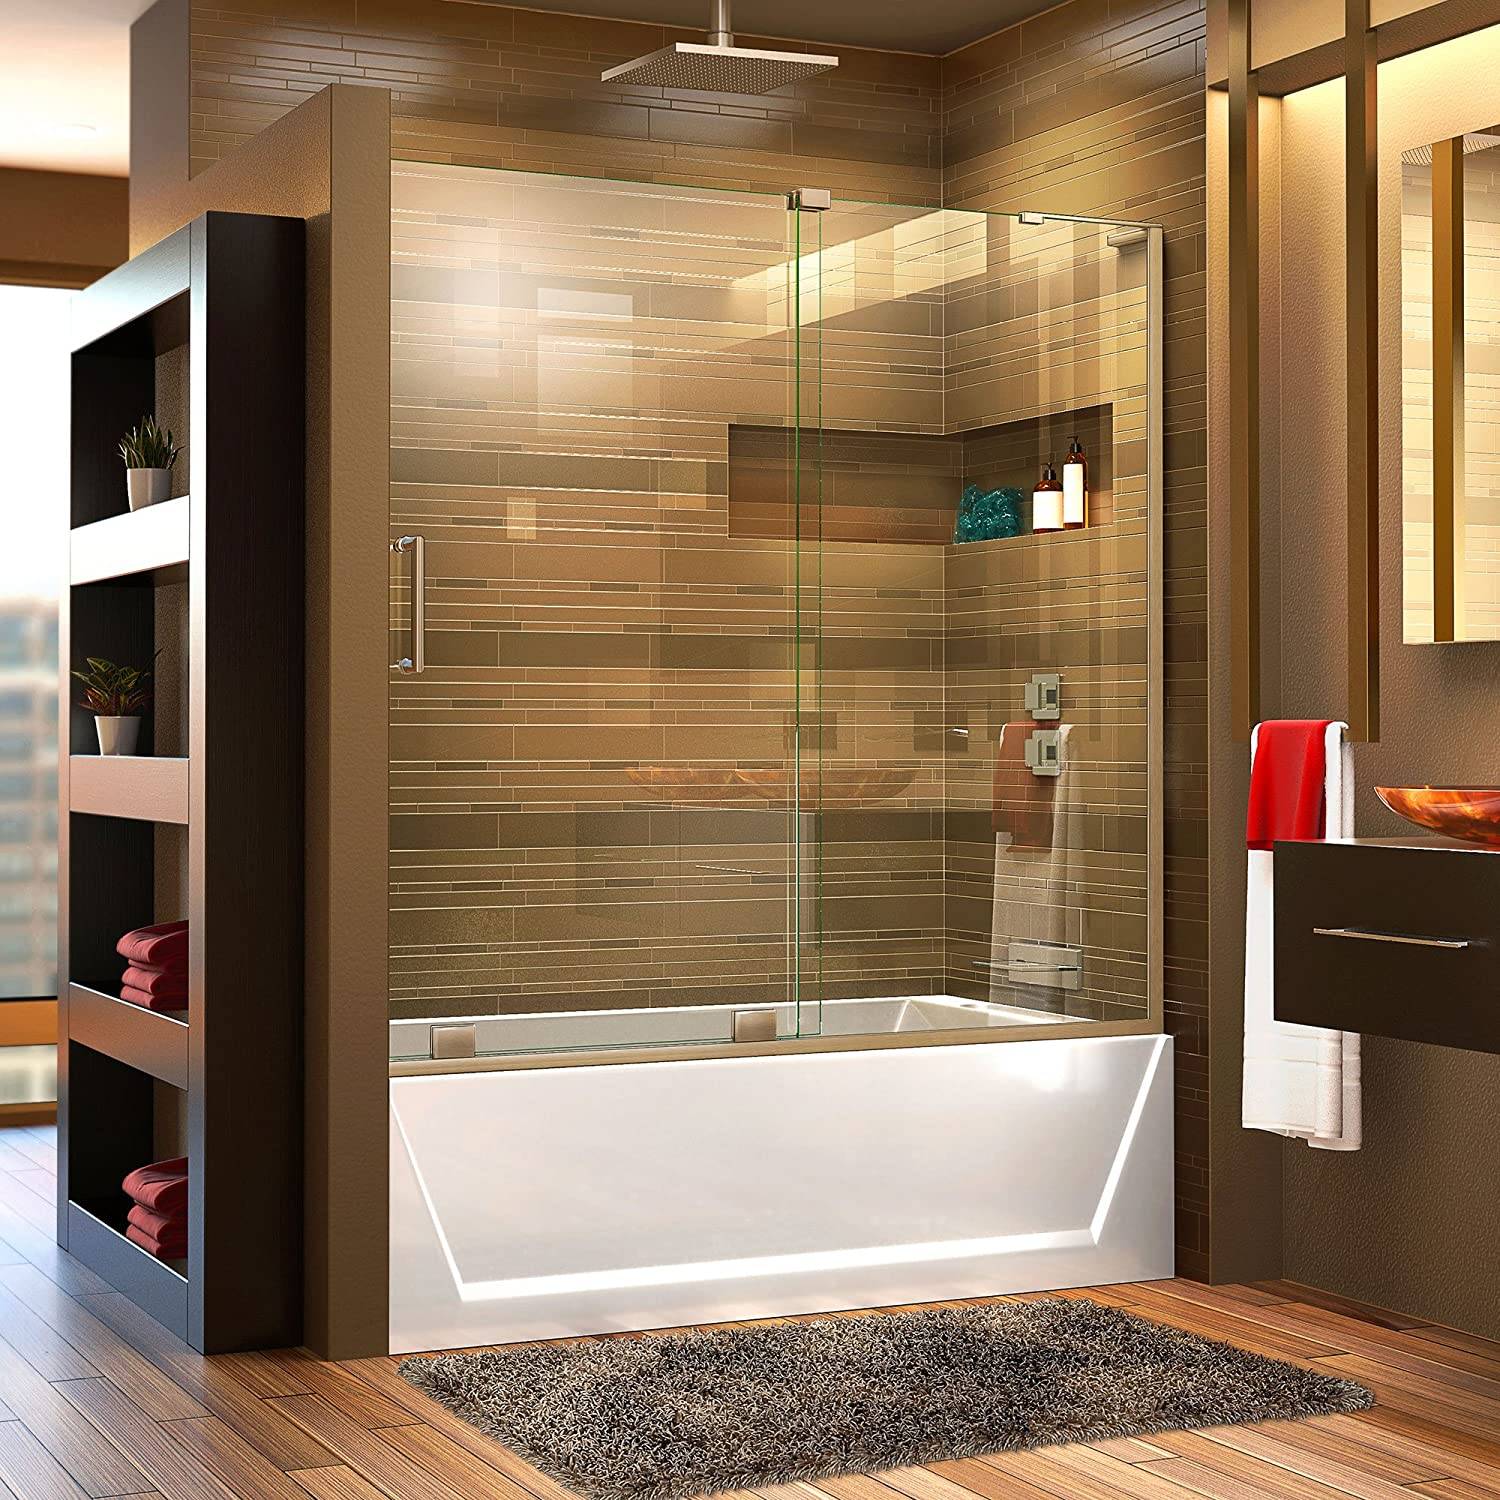 full glass shower size stupendous tag tub tags concept hardware doors image cabin and lowesbi of wonderful door bifold